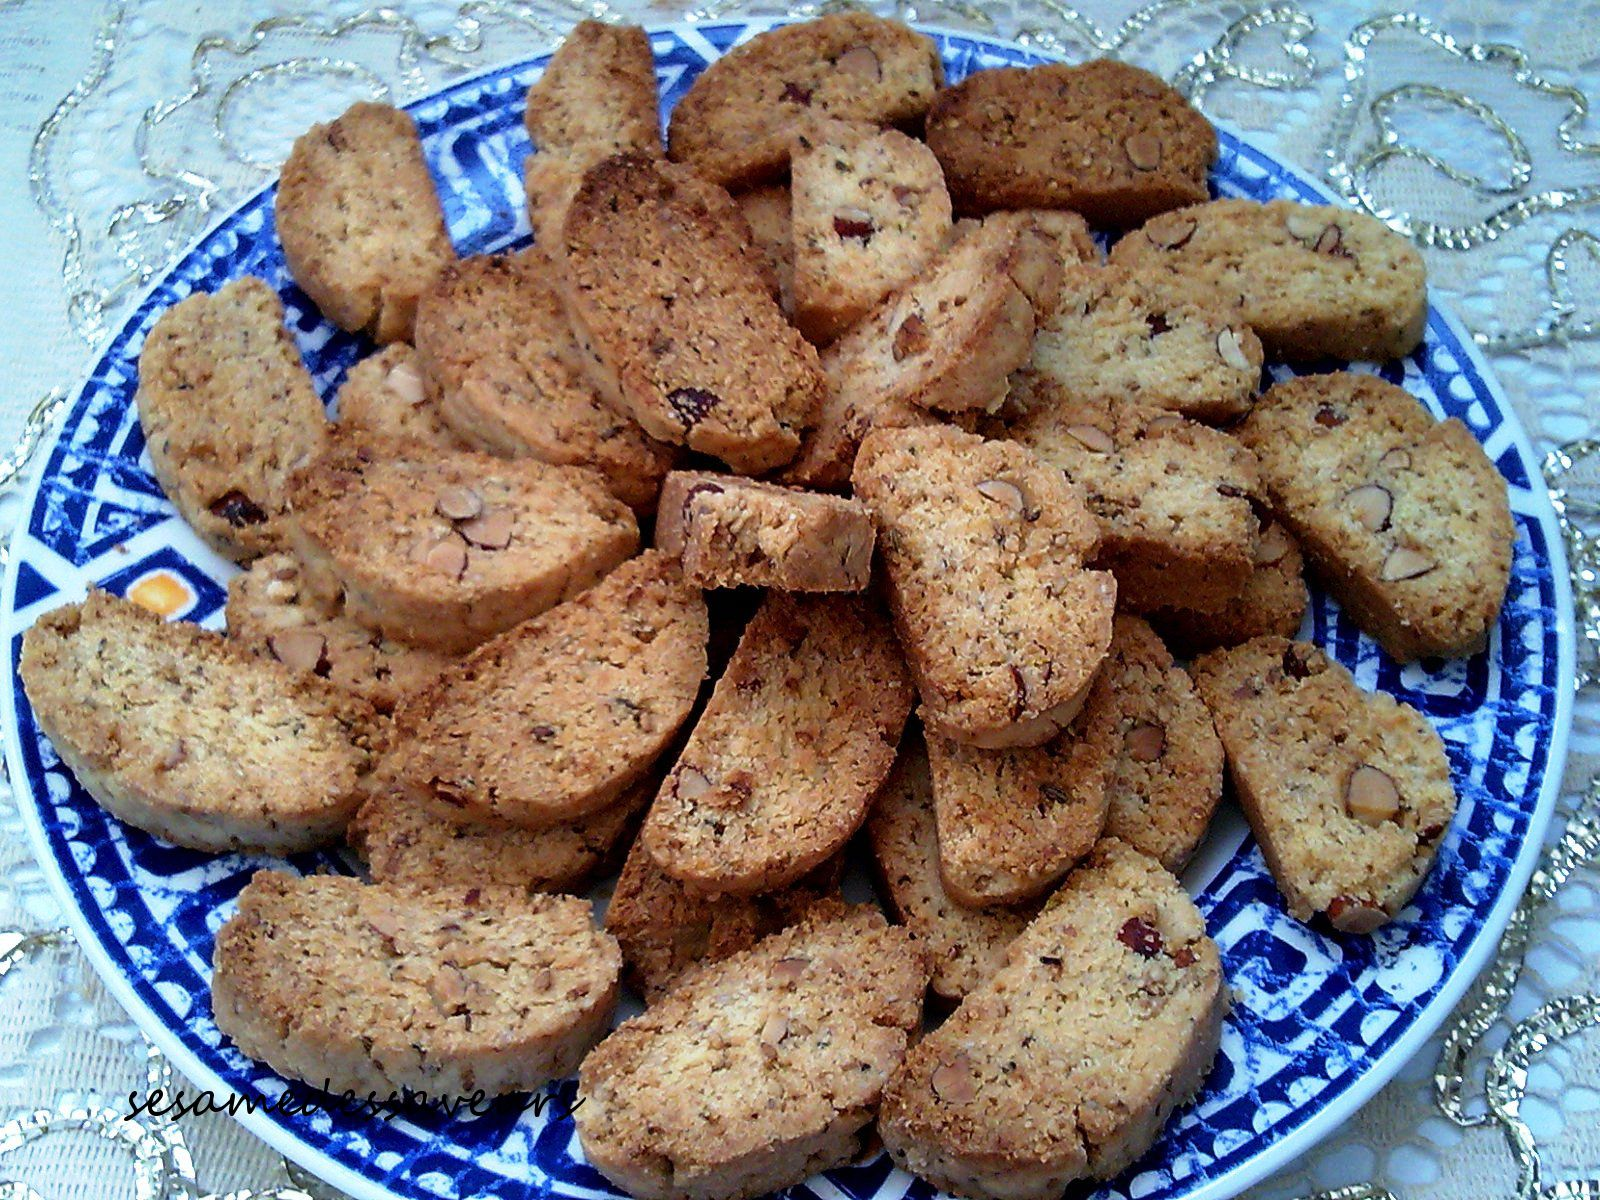 FEKKAS OU BISCUITS MAROCAINS